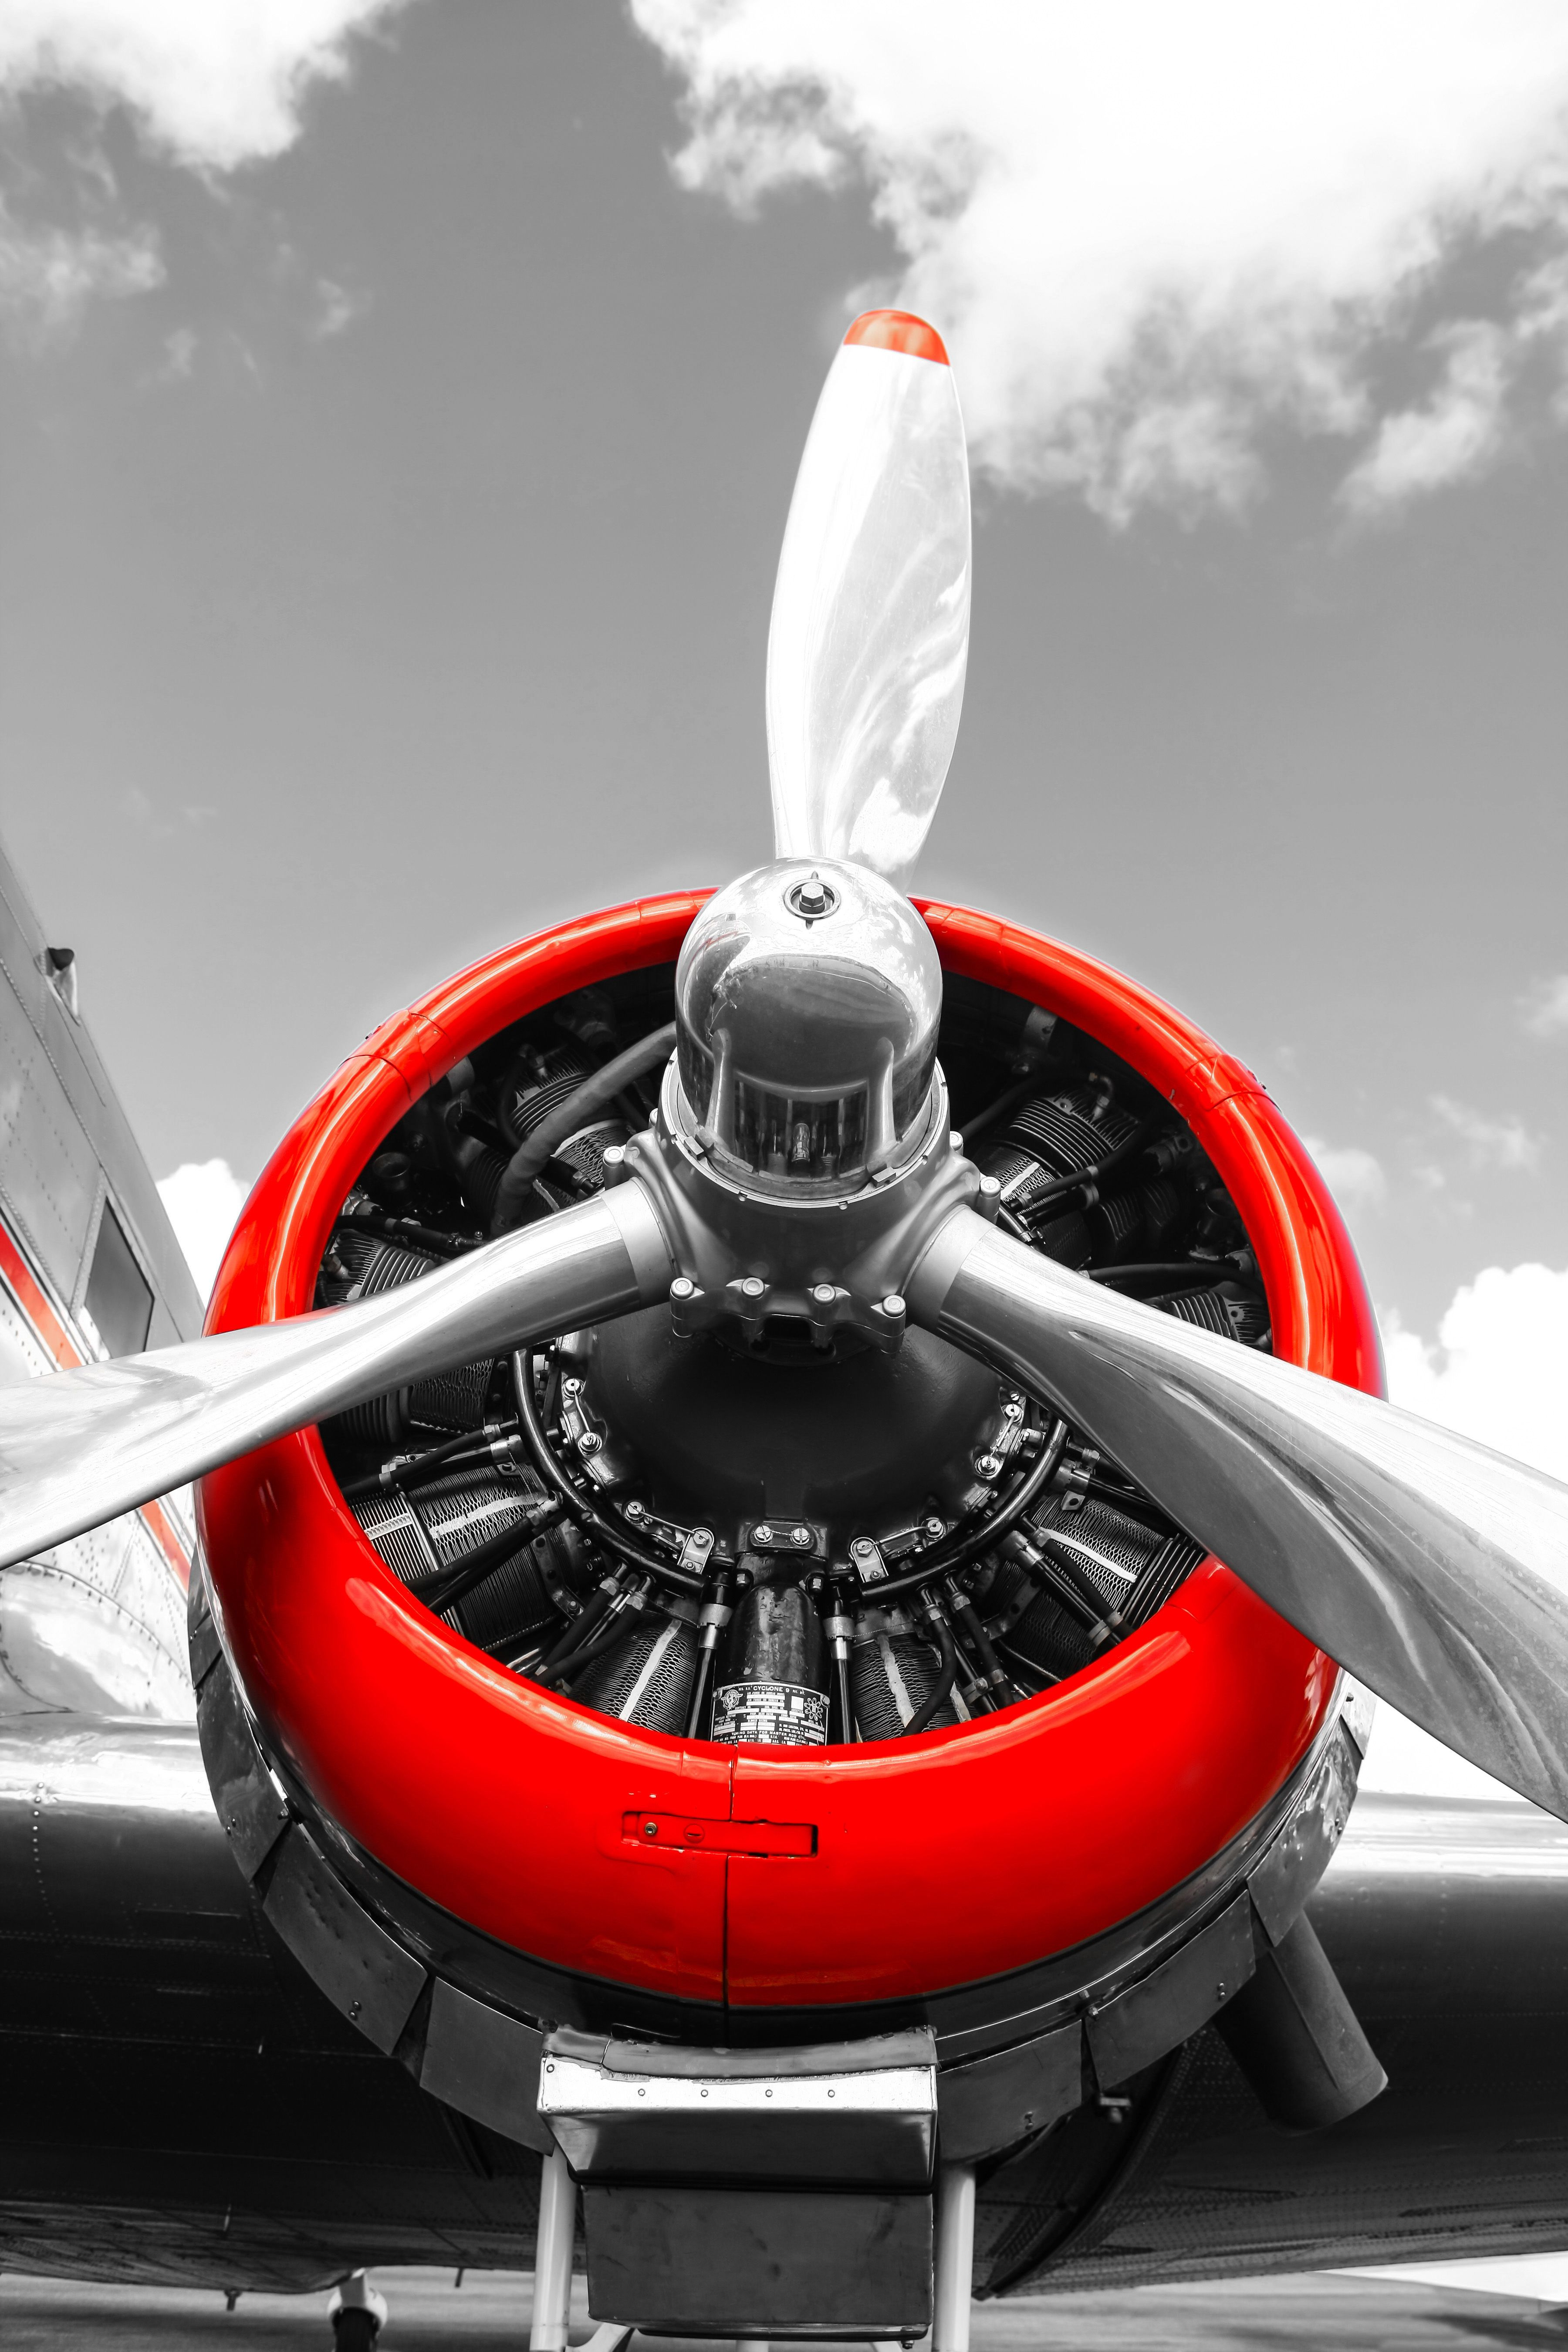 Red Cowled Dc3 Pratt Whitney Radial Engine Vintage Aviation Wall Decor Print By Csfotoimages Available At Www Etsy Vintage Aircraft Aircraft Radial Engine